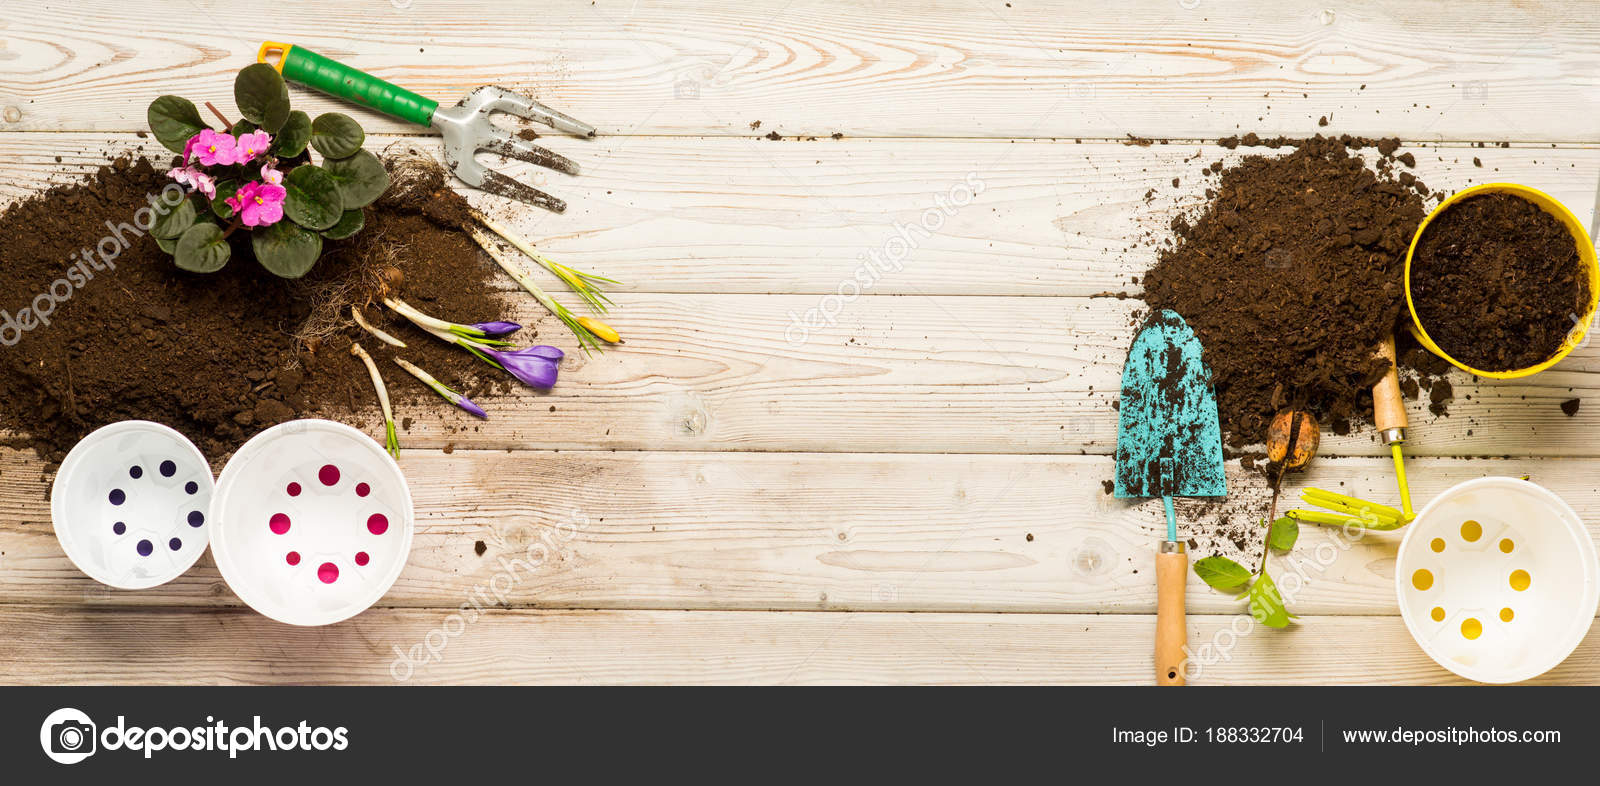 Gardening earth and flowerpots on wooden background spring garden spring garden and greenery in house work of gardener preparation for spring floristics and flower shop florist future flowers and tools photo by mightylinksfo